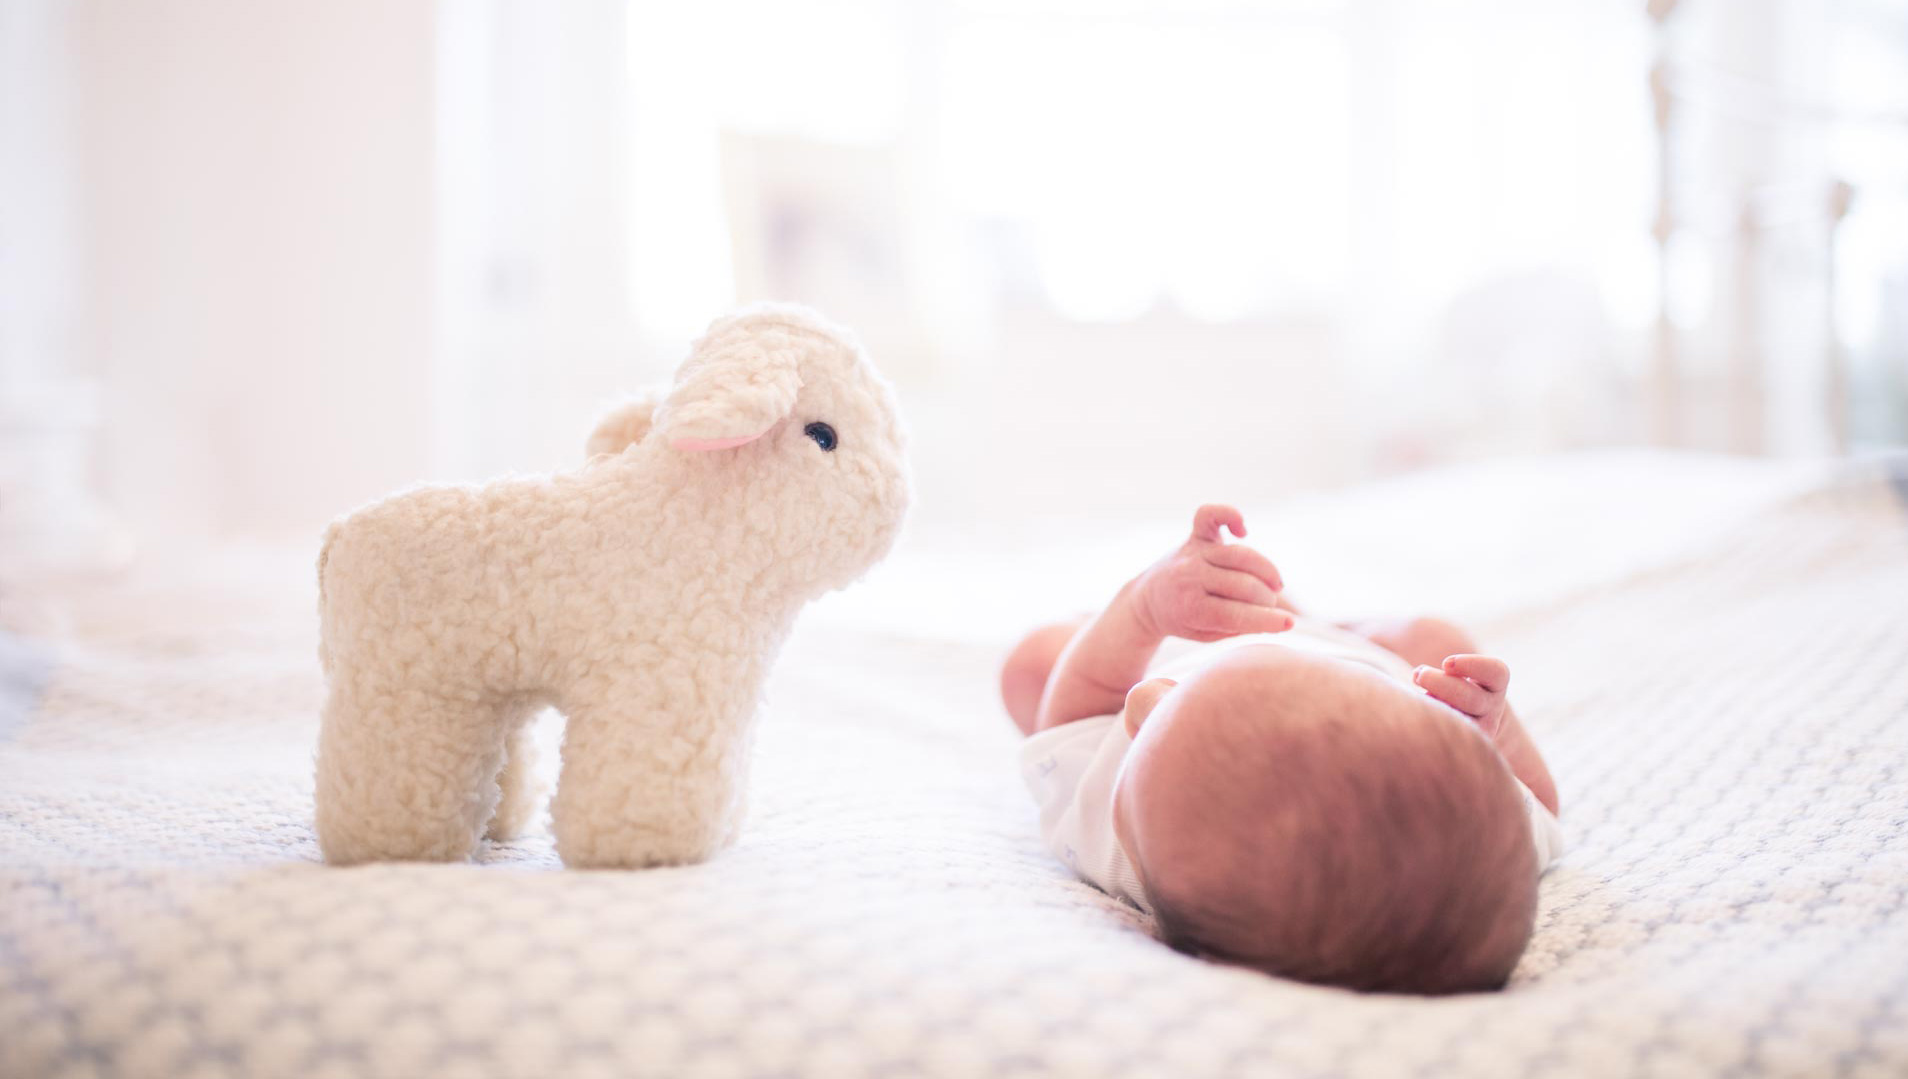 An image of a newborn baby lying on a bed with a soft toy - newborn shoot by Sam of Hansford Carter, a Kent-based wedding photographer